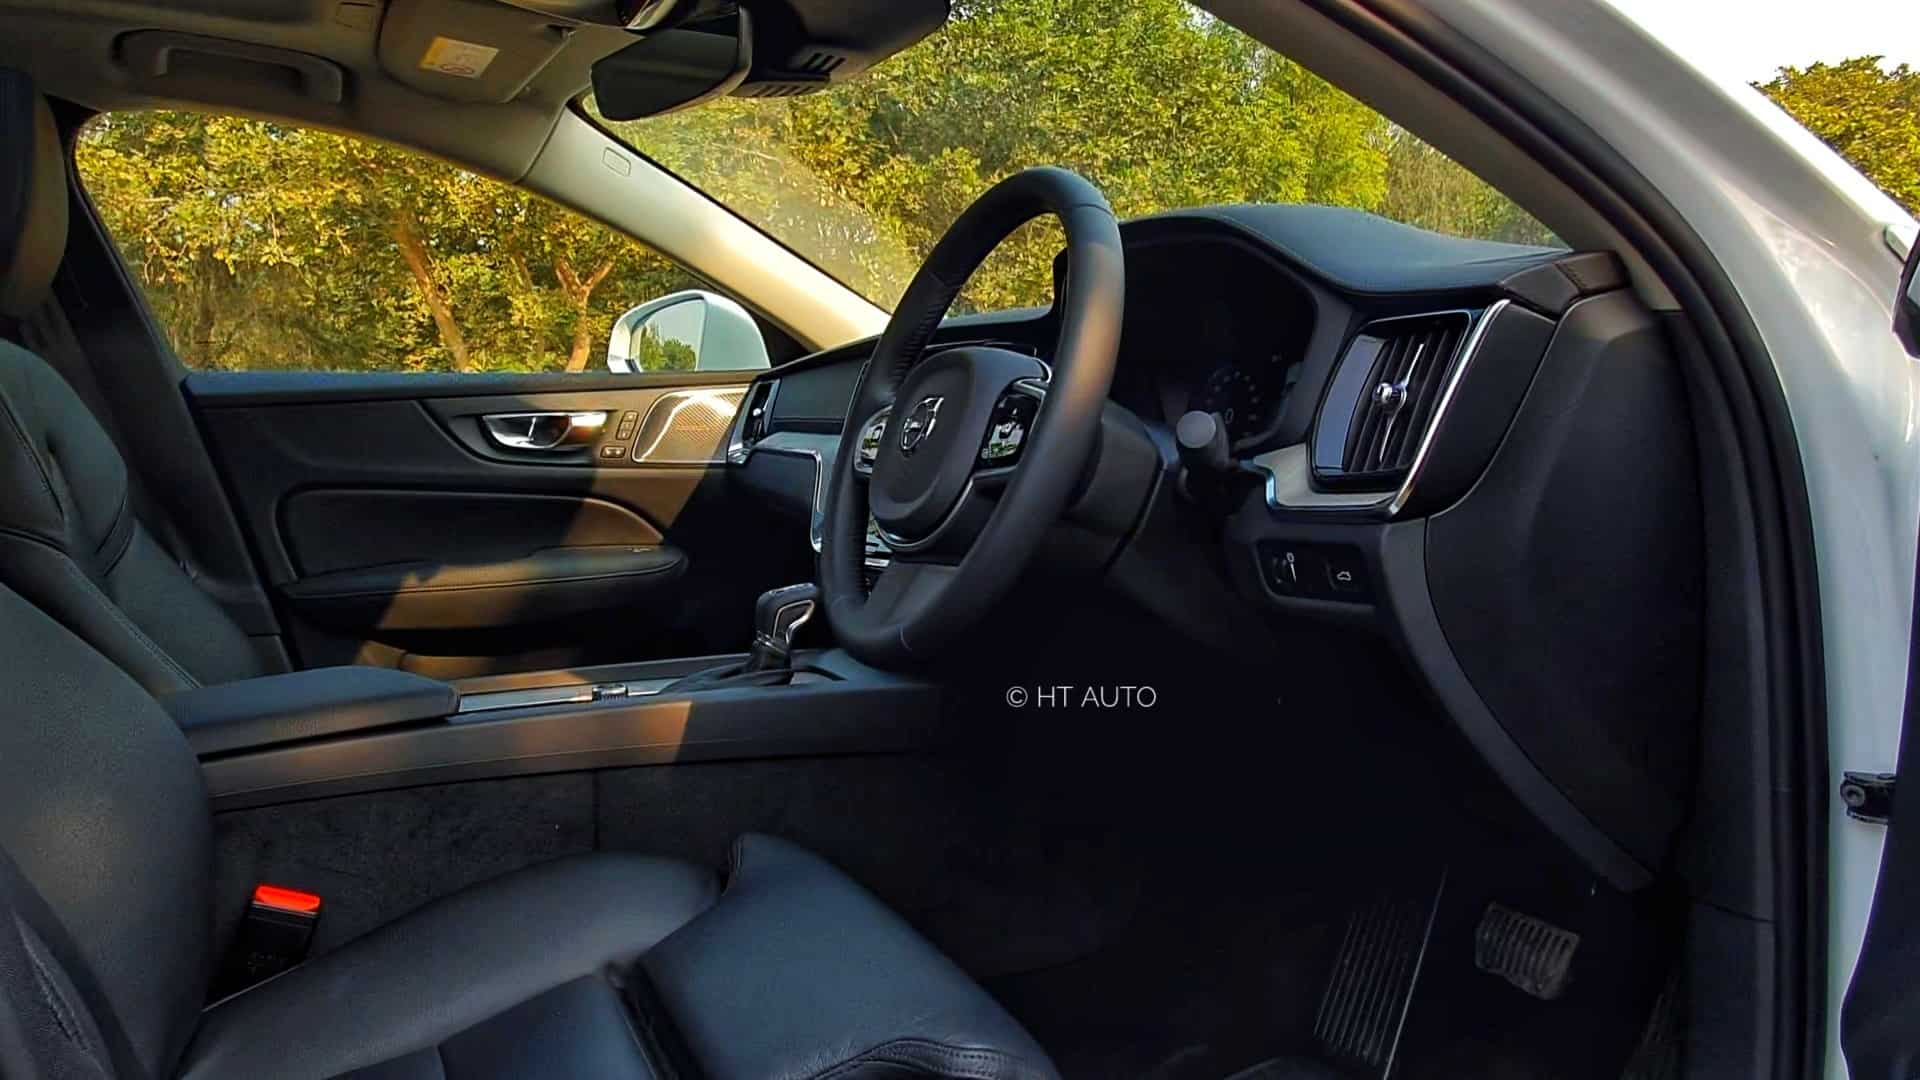 The new S60 is right up there with four-zone climate control, Clean Zone air purifier tech, wireless phone charging and a 14-speaker Harman Kardon system.